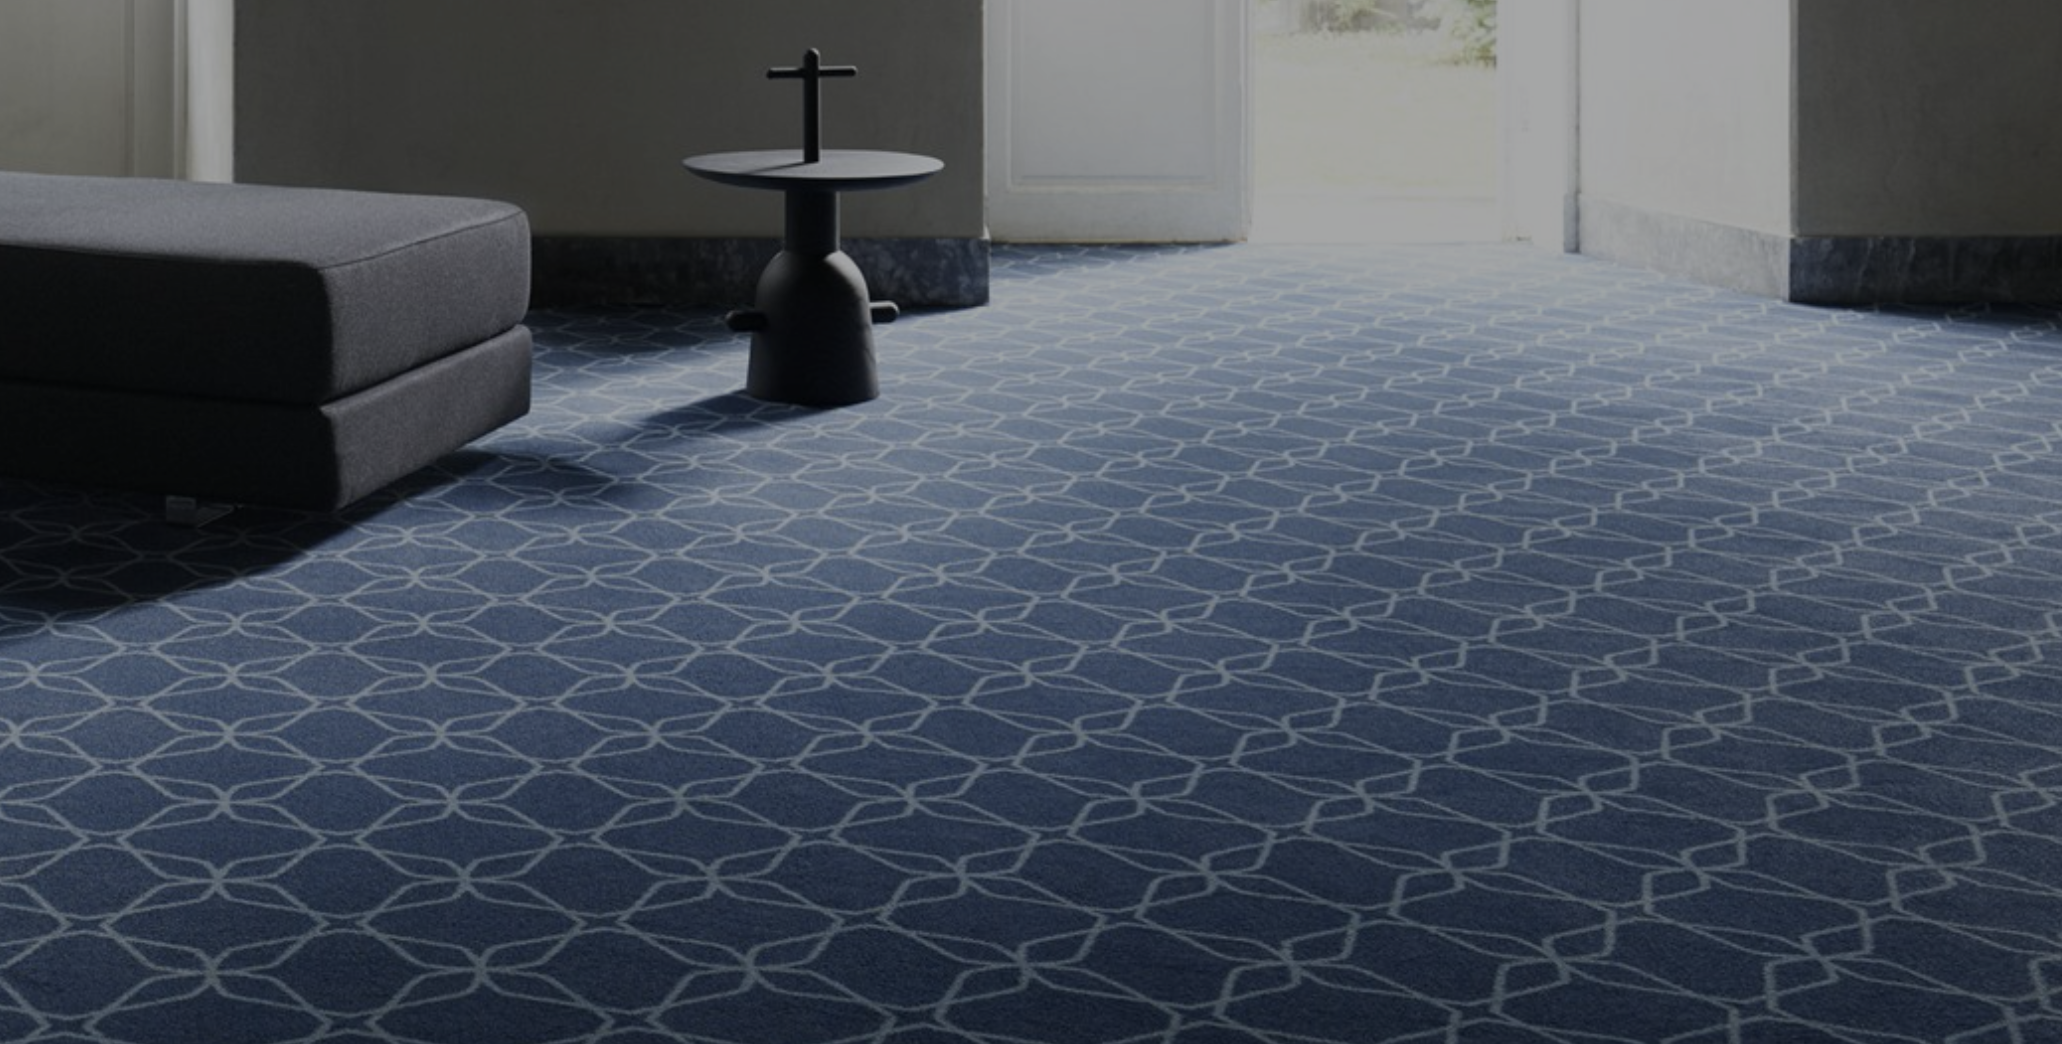 Ege Carpets make collections use Econyl, fibre made from recycled fishing nets